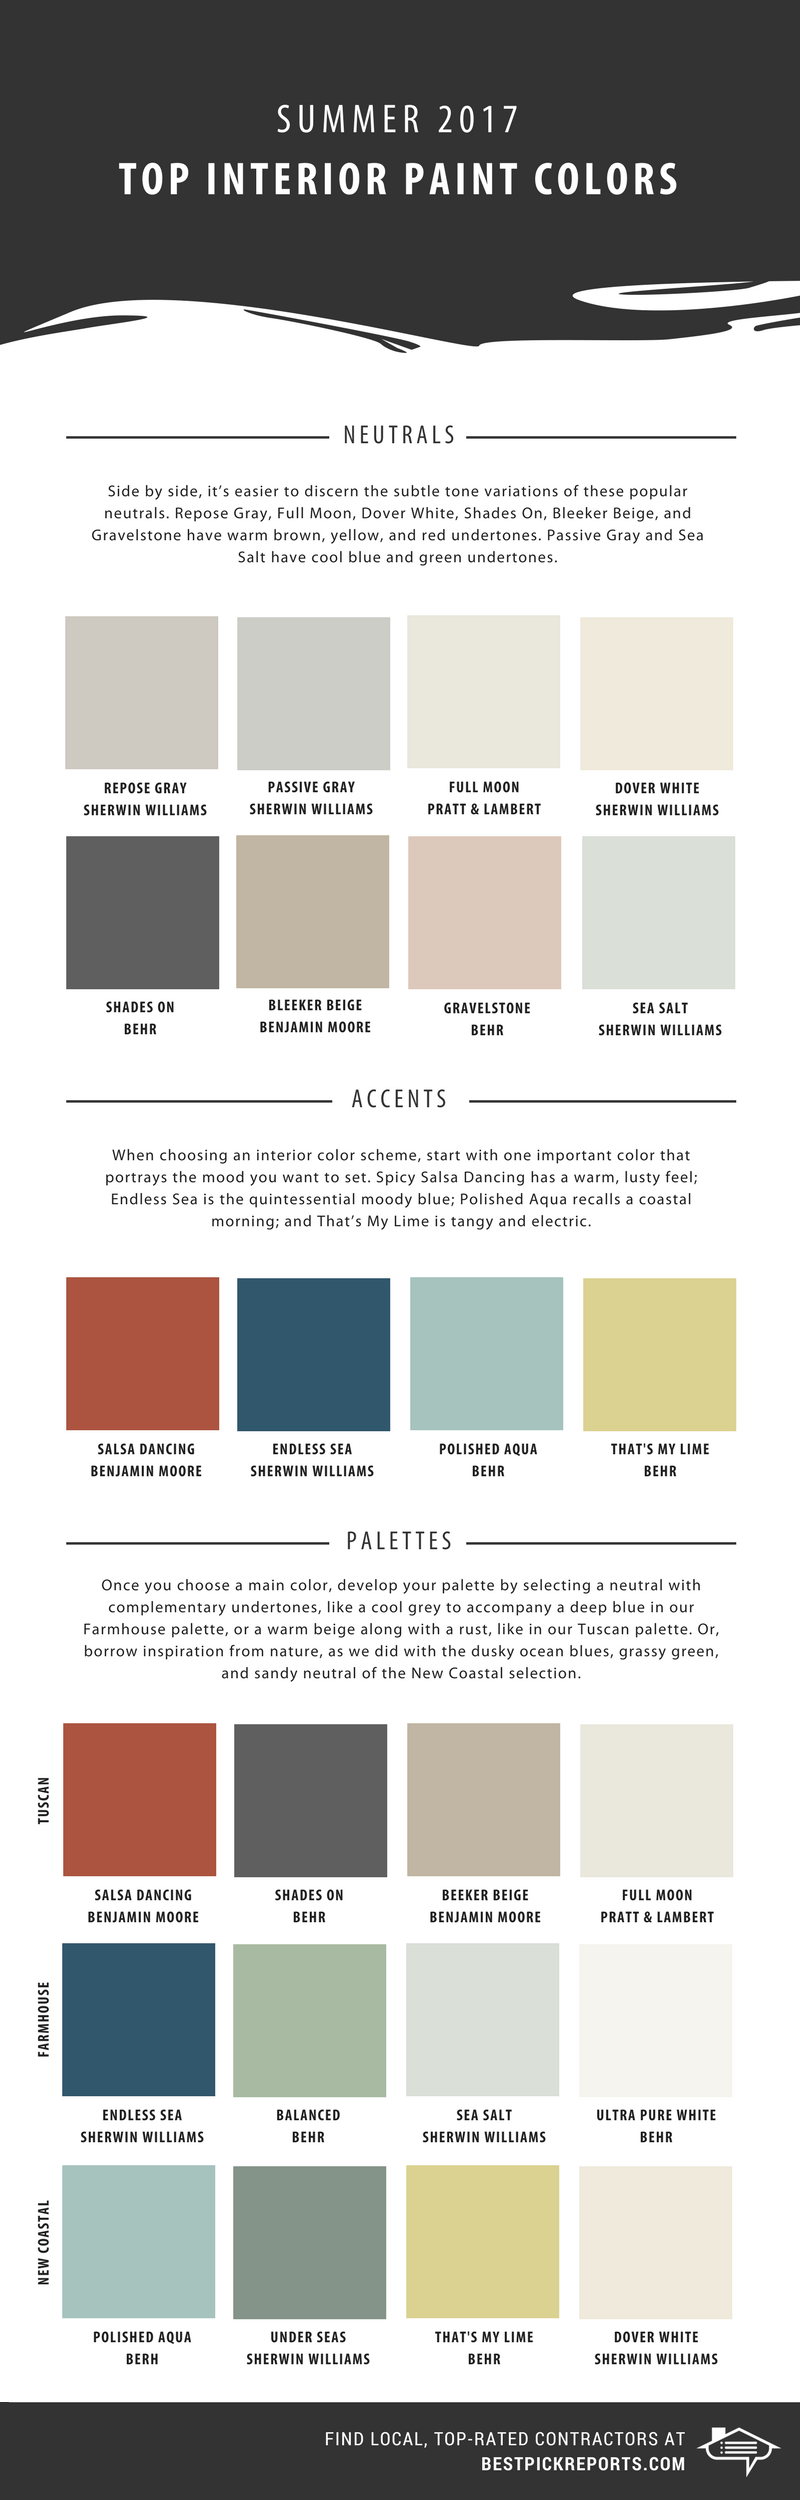 Infographic on the top interior paint colors